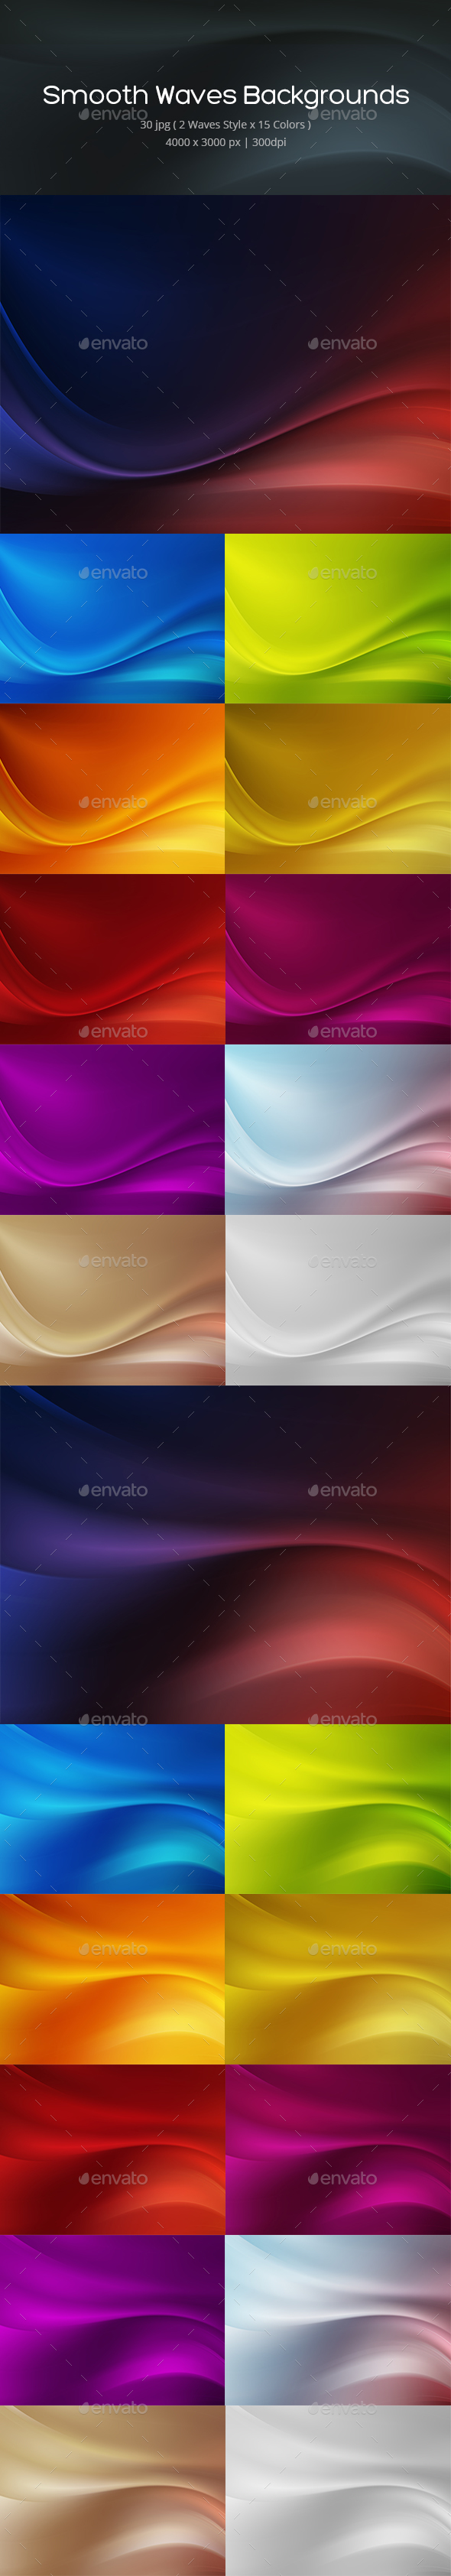 GraphicRiver 30 Smooth Waves Backgrounds 21089567